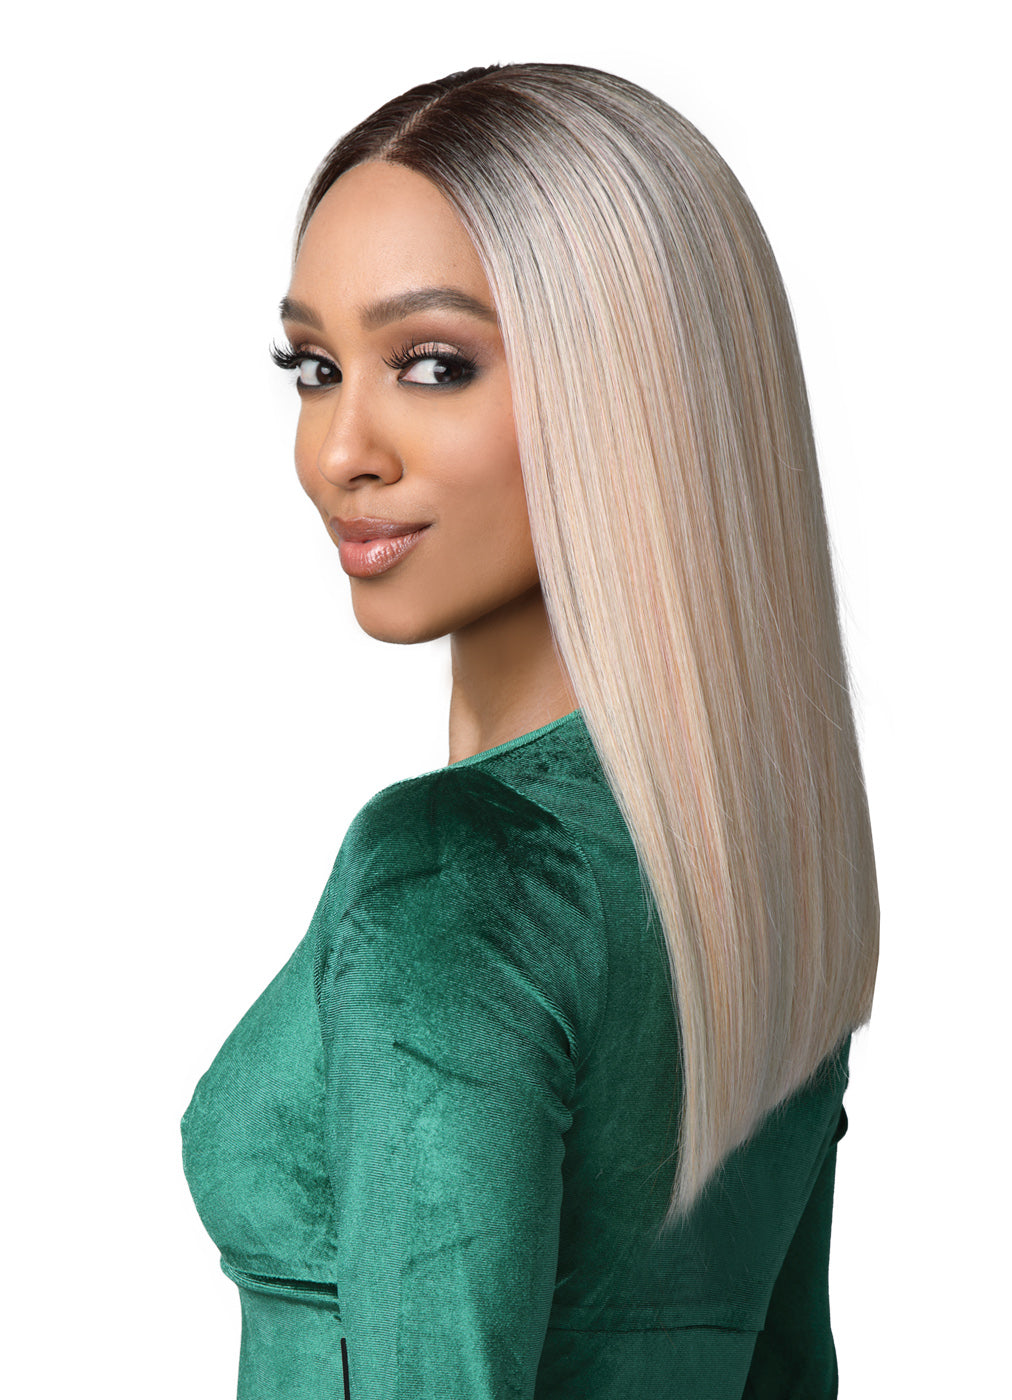 Bobbi Boss Synthetic Hair 13x5 HD Frontal Lace Wig MLF470 CHERIE